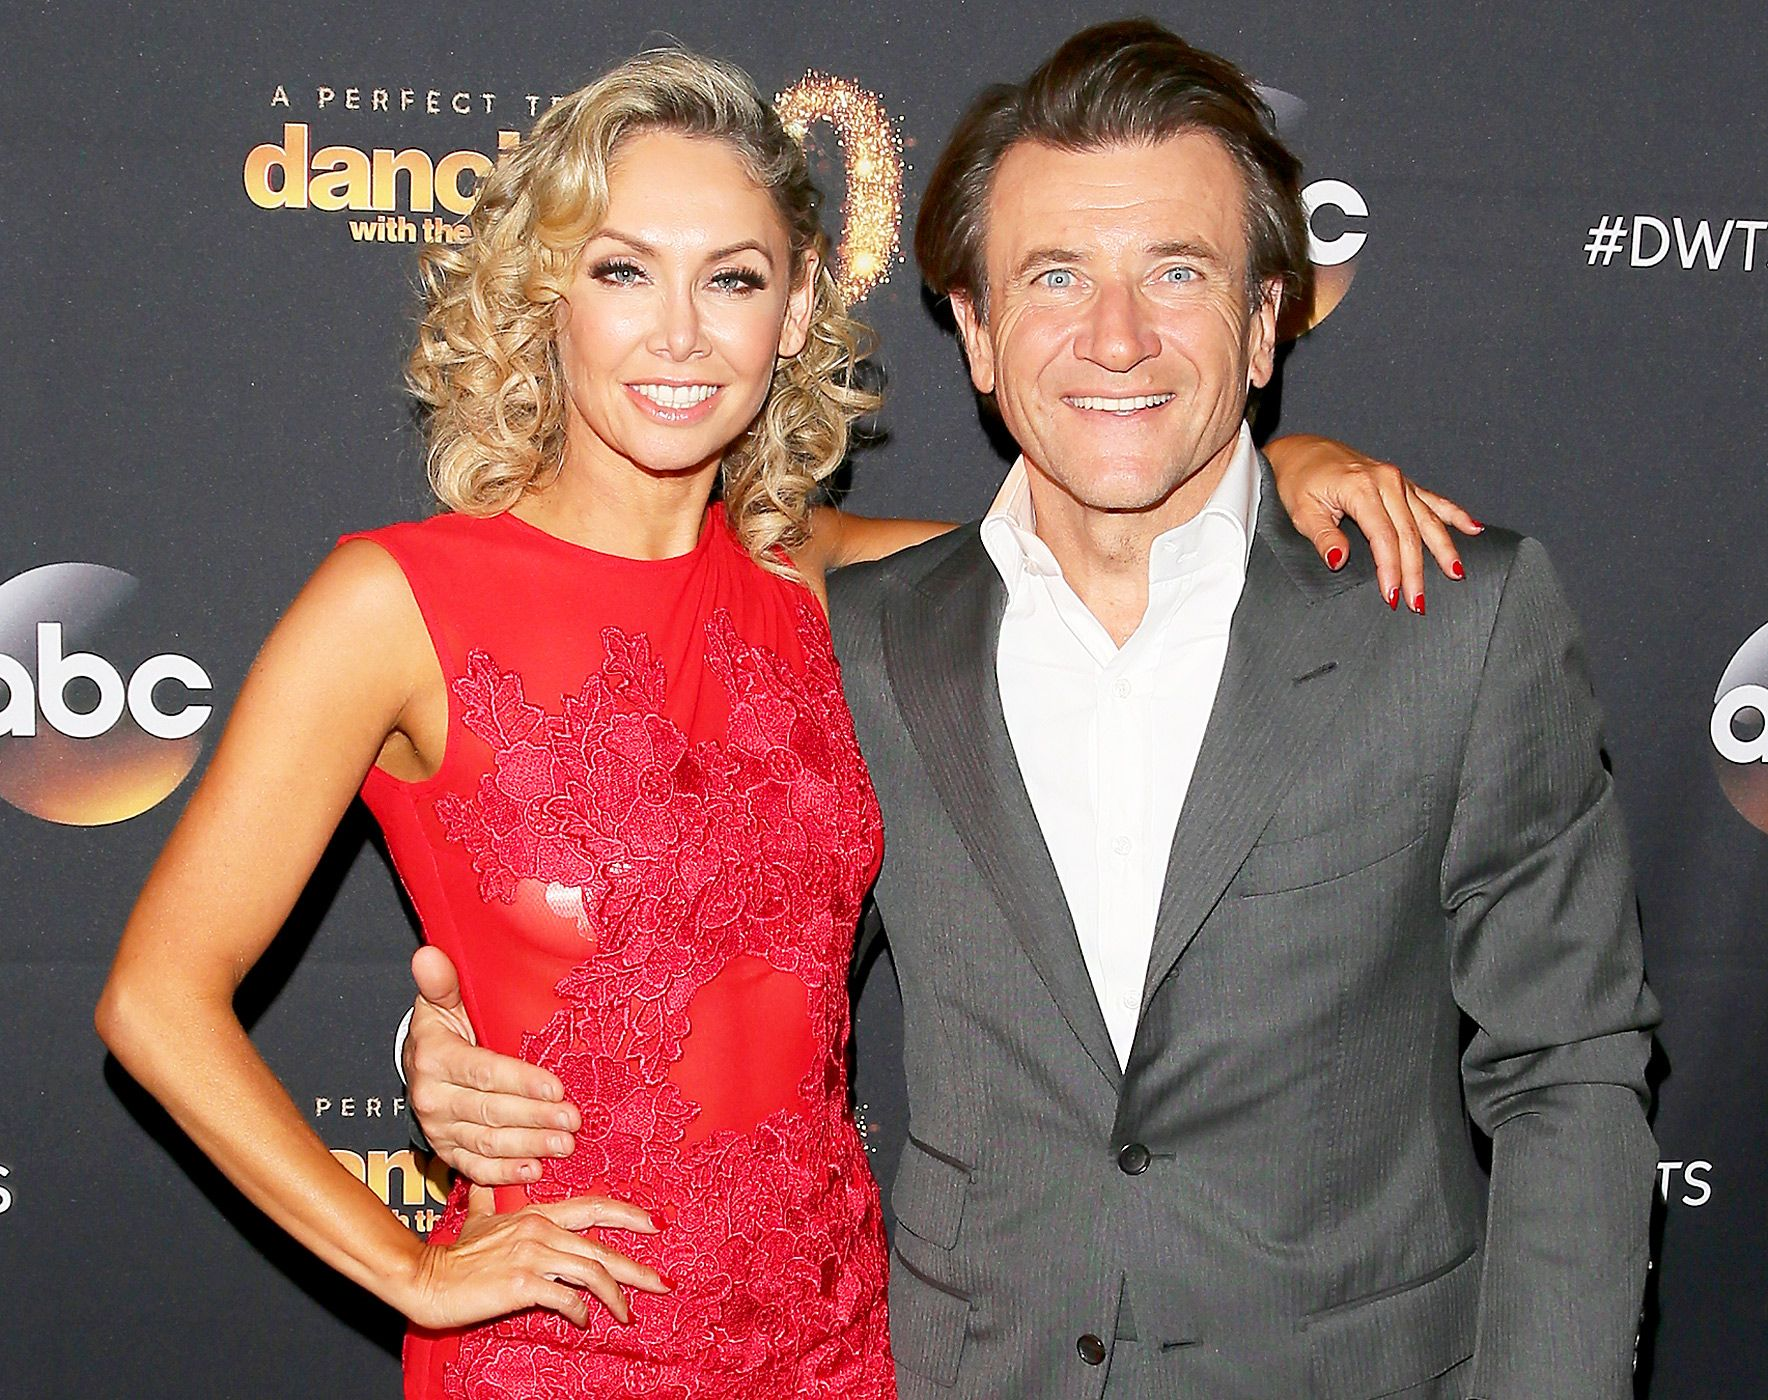 3. Kym Johnson and Robert Herjavec